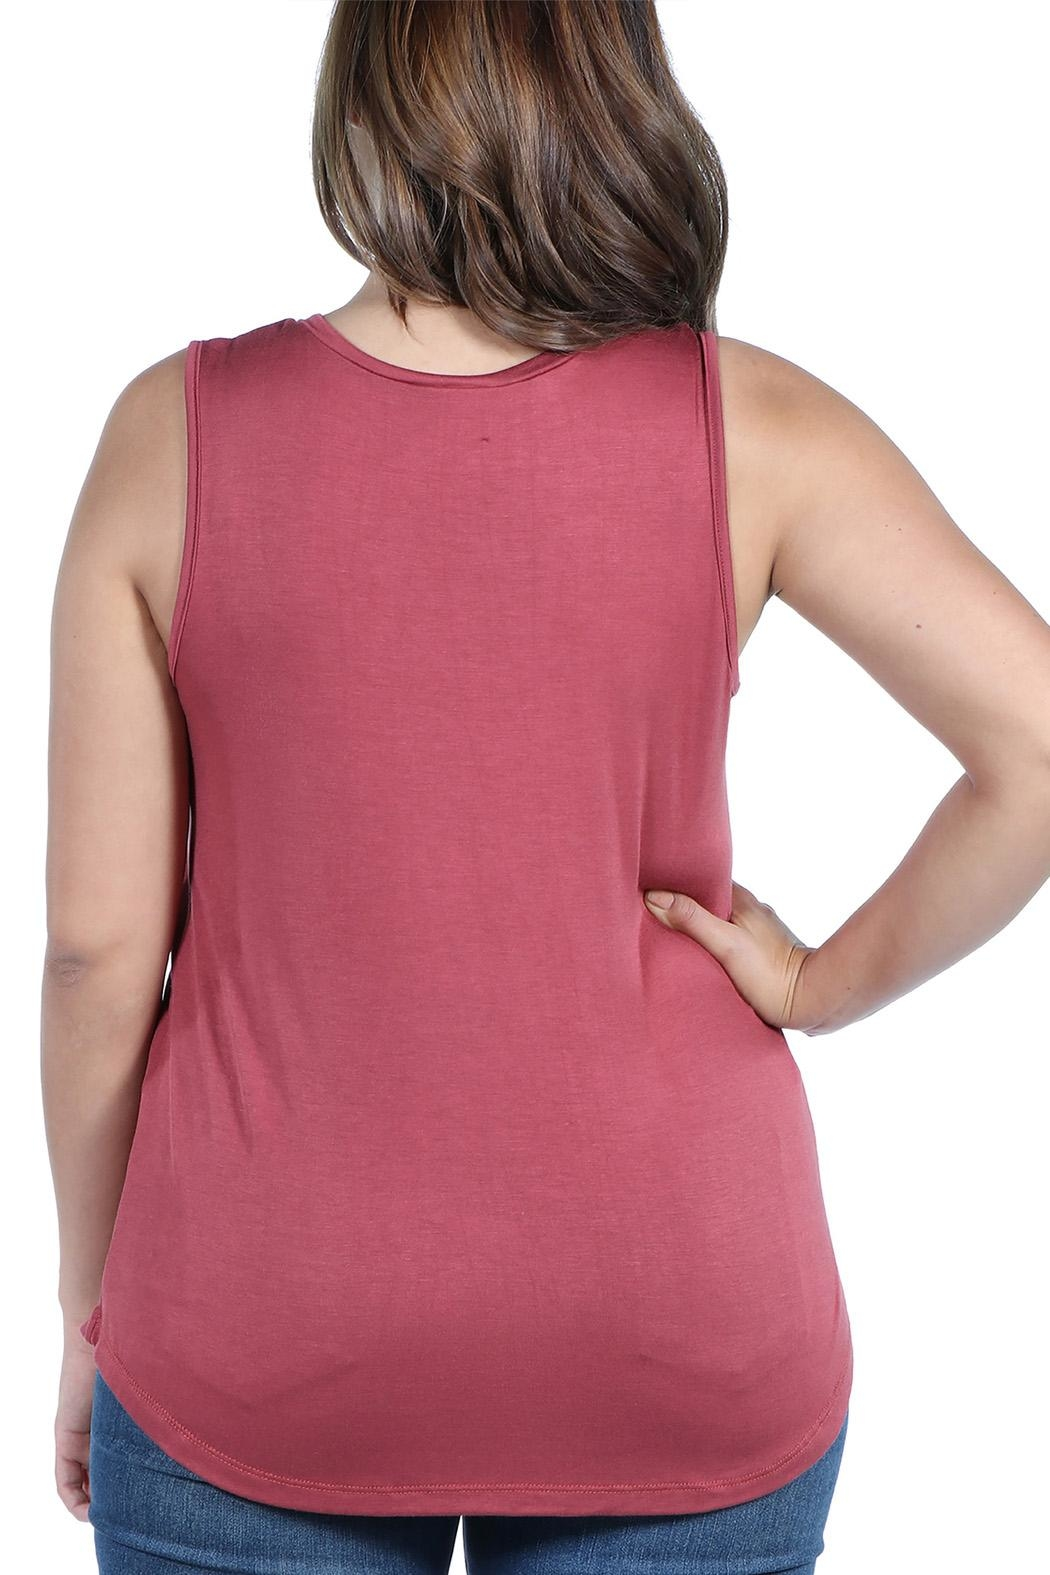 24/7 Comfort Apparel Plus Sleeveless Top - Side Cropped Image